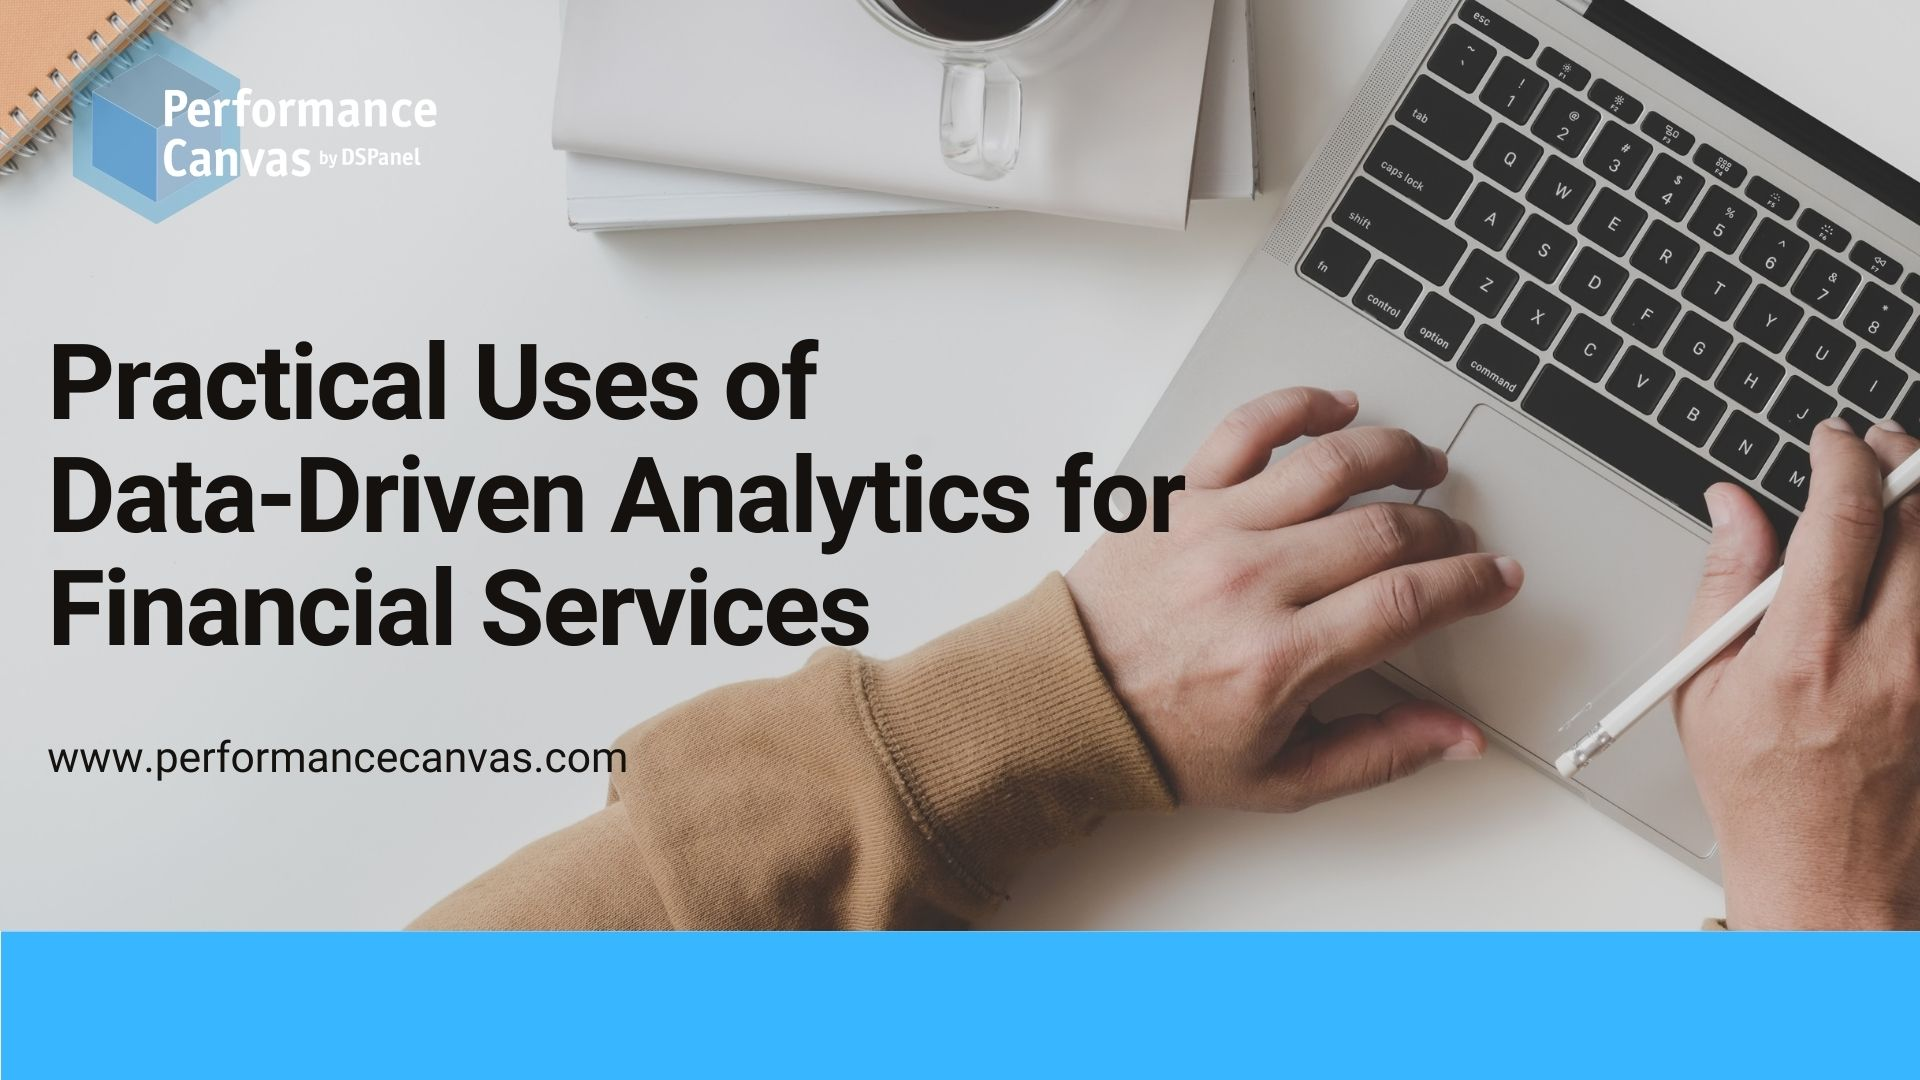 data-driven analytics for financial services